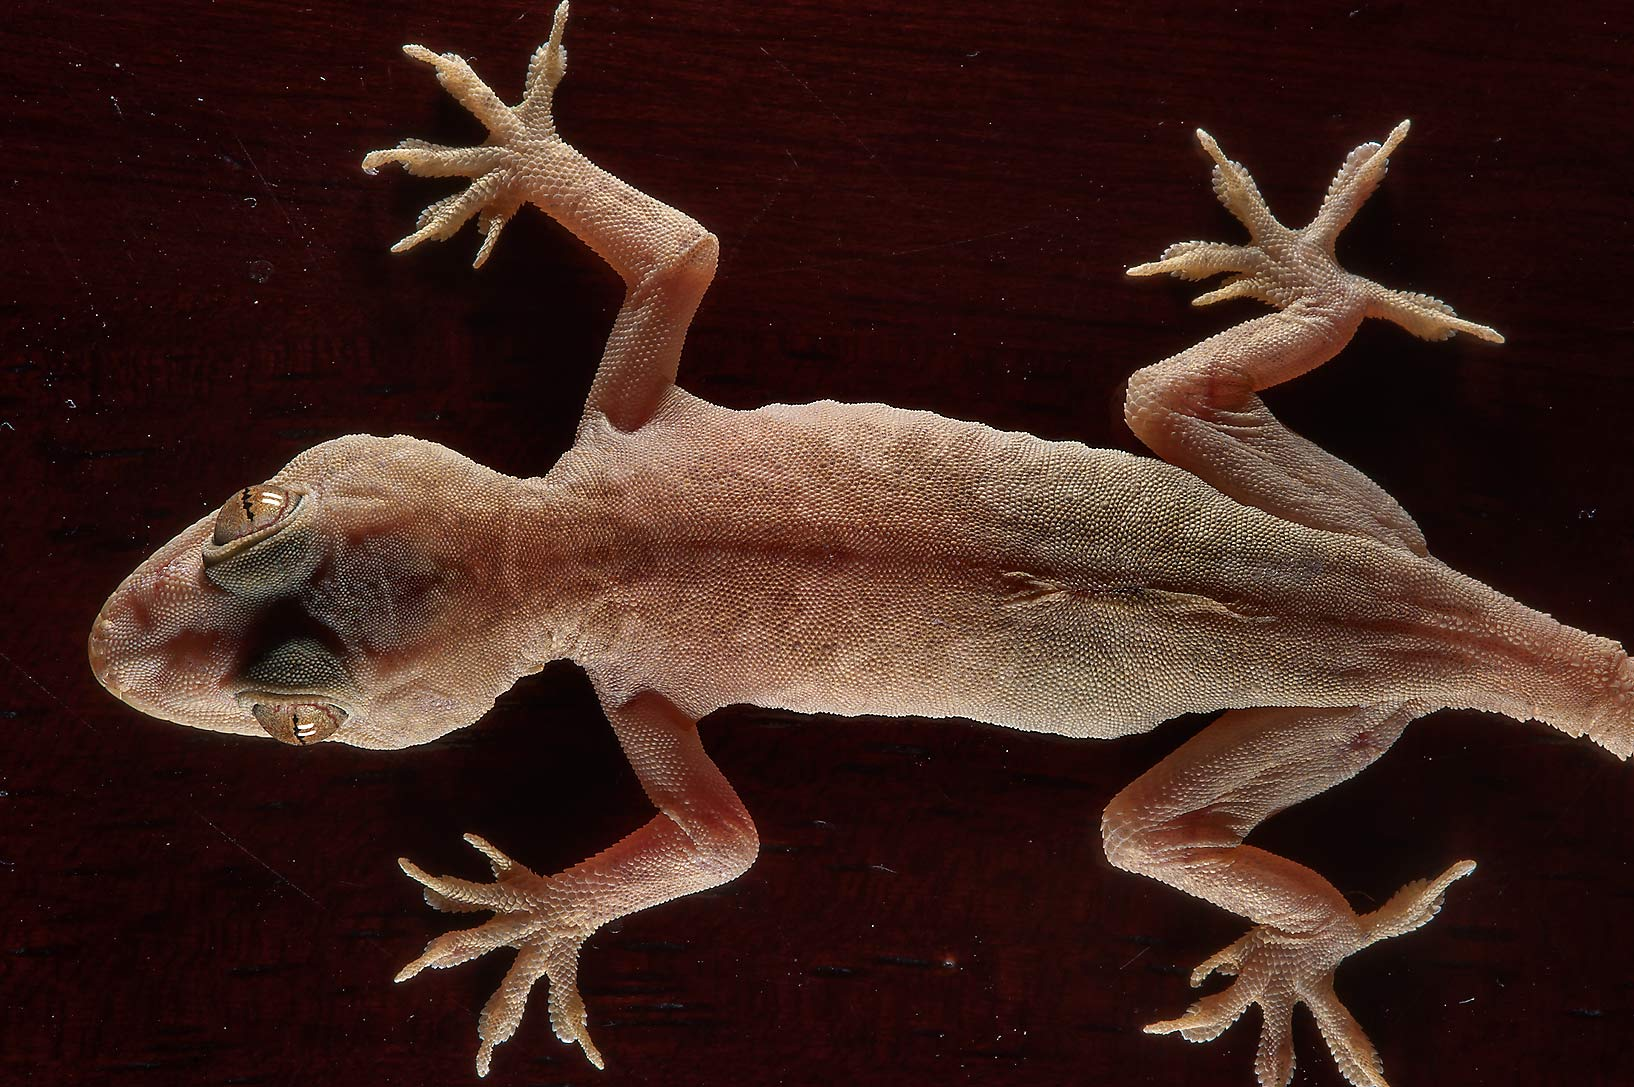 Yellow-bellied House Gecko (Hemidactylus...Thani Museum near Al-Shahaniya. Qatar